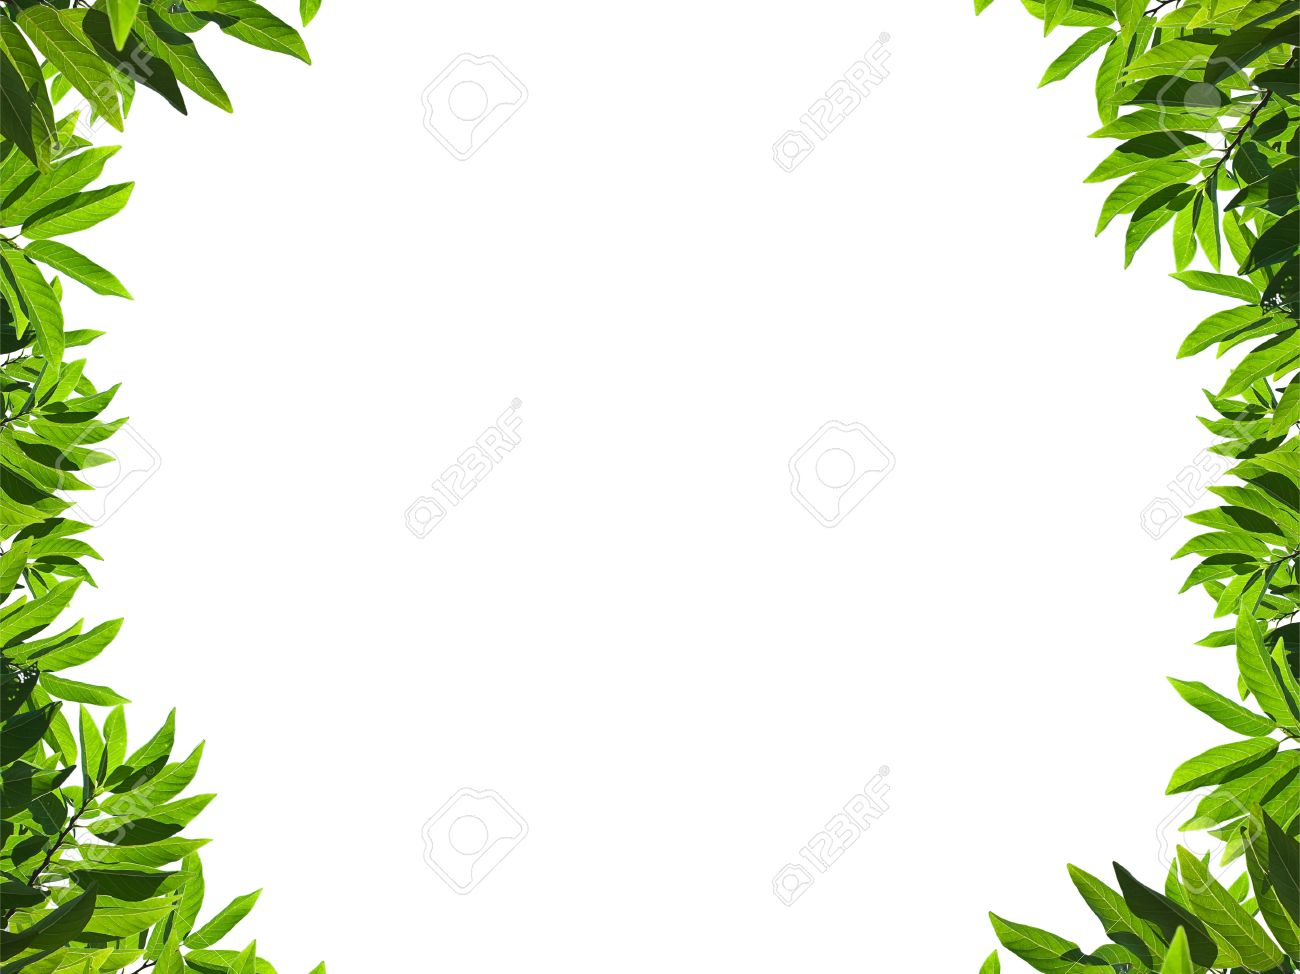 Natural Green Leaf Frame On White Background Stock Photo, Picture ...